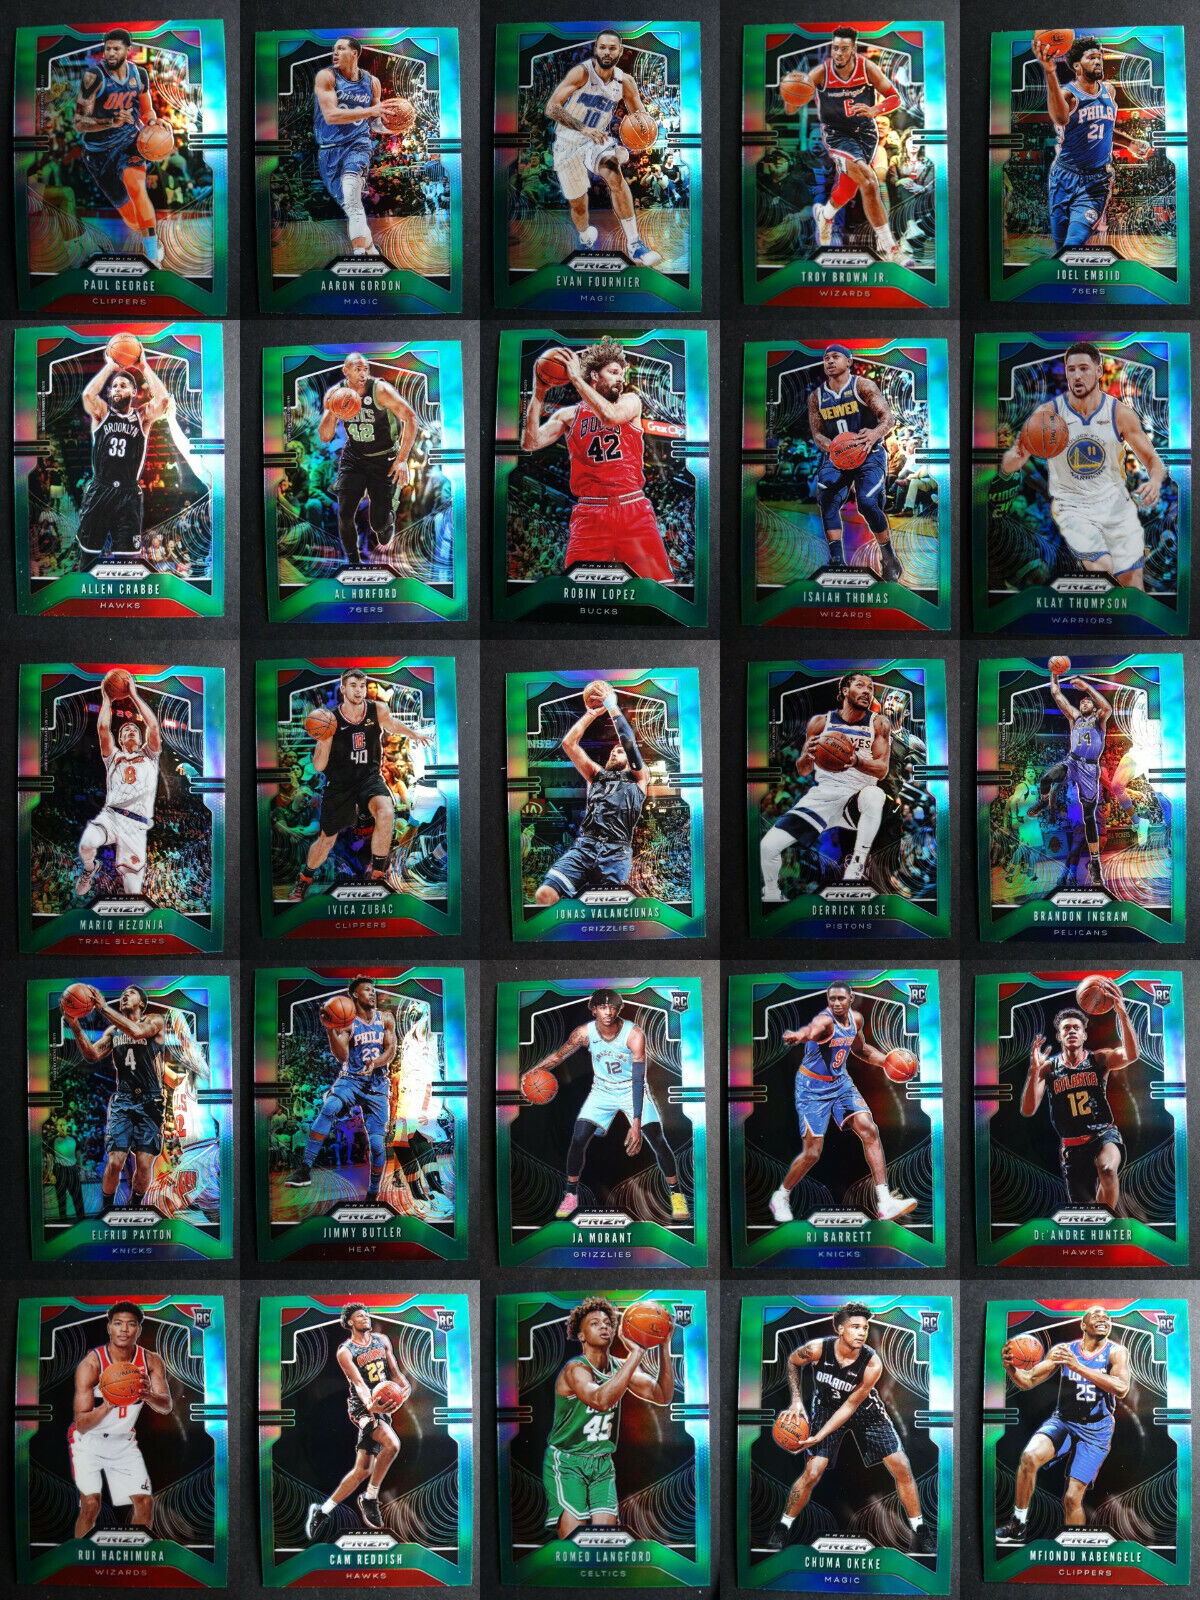 2019 20 prizm green parallel basketball cards